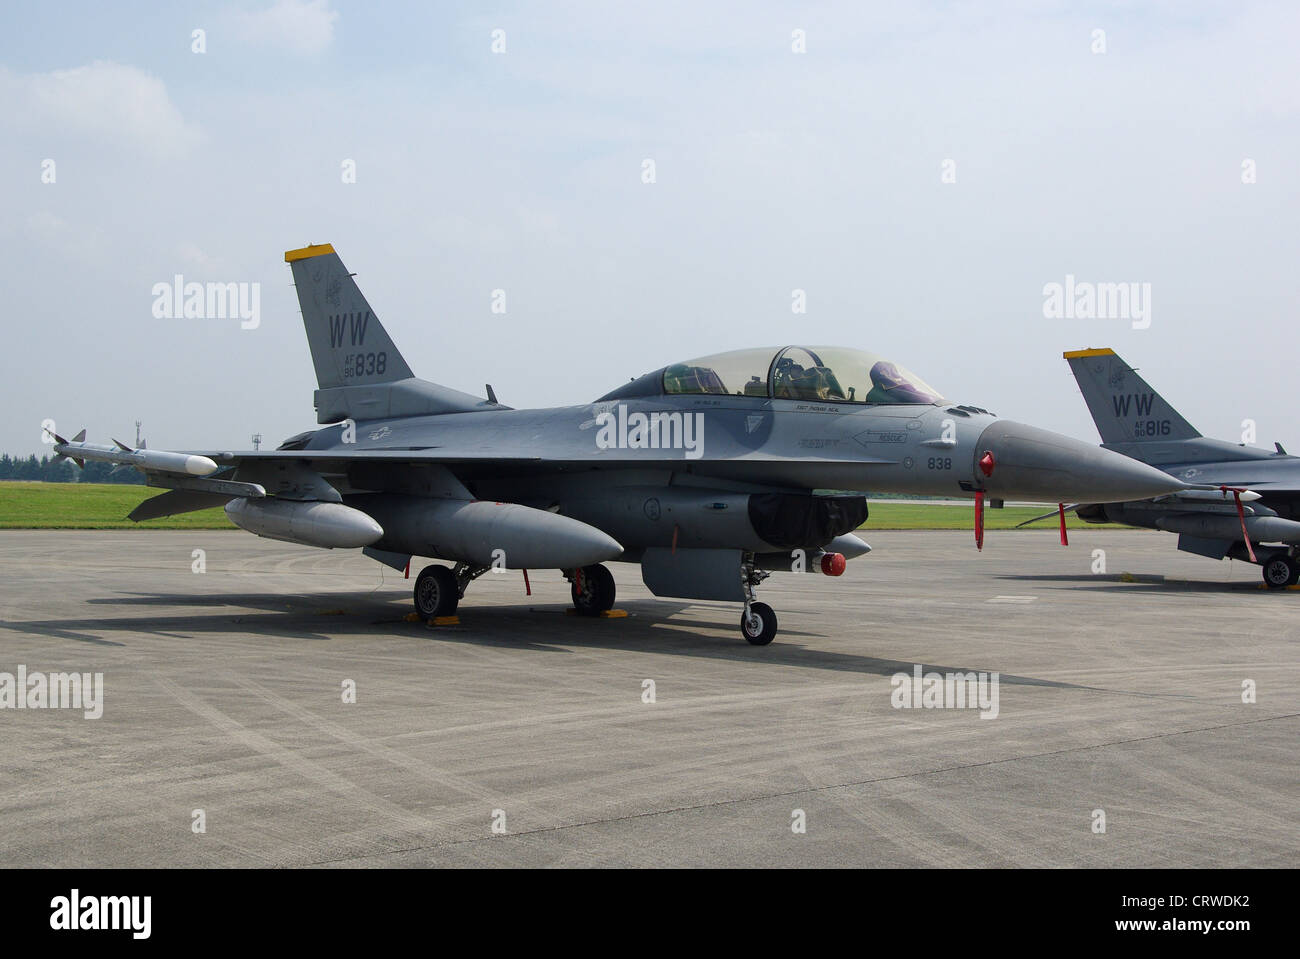 F-16C/D Fighting Falcon - Stock Image